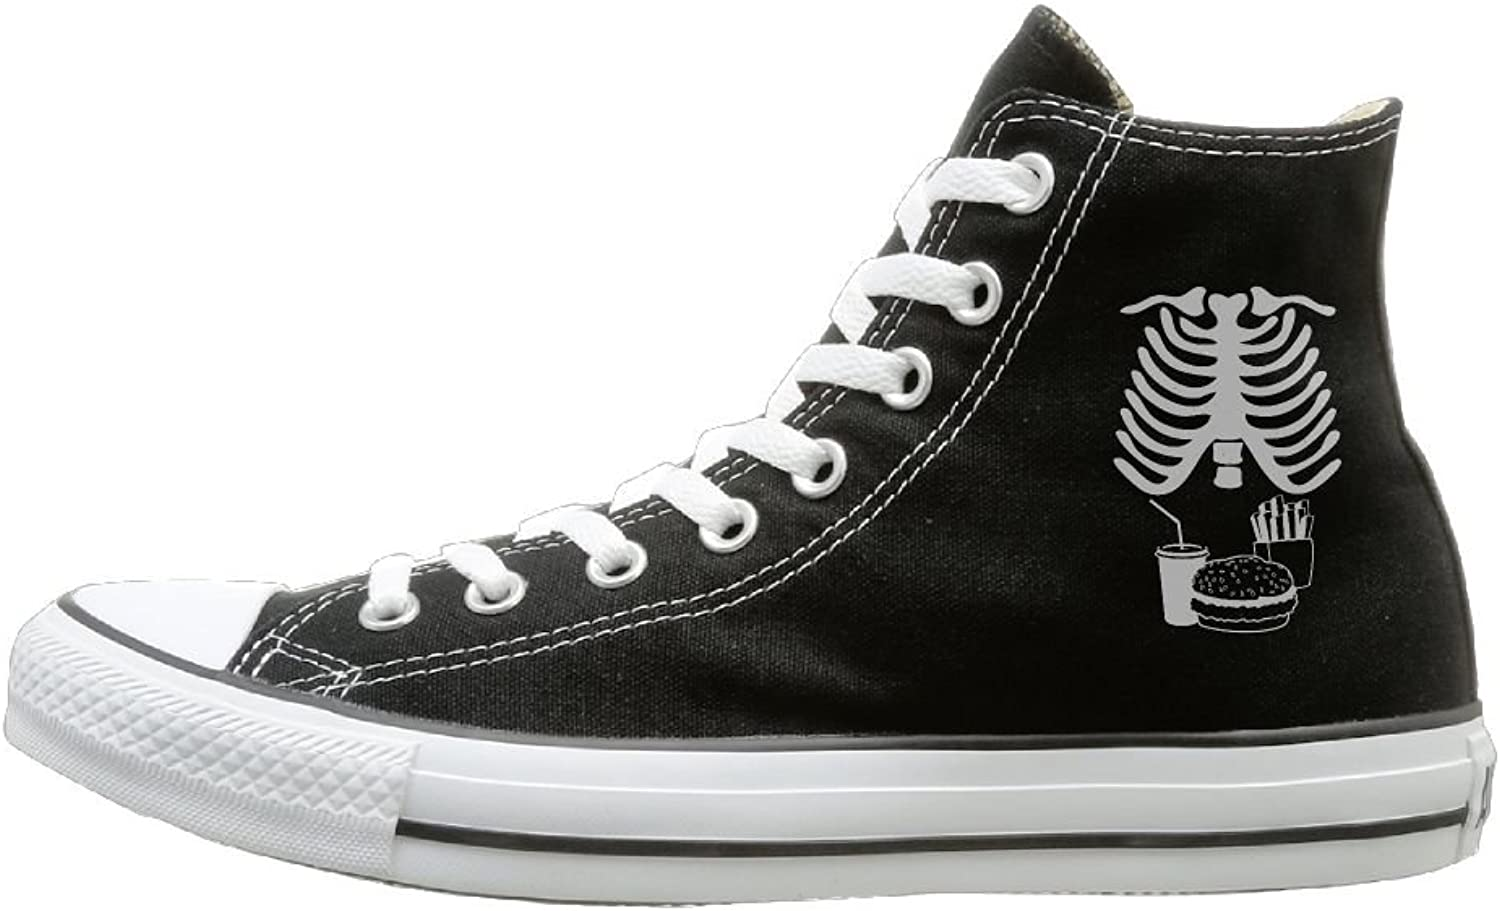 Classic High-Top Canvas Sneakers Skeleton Junk Food Casual Sneakers Canvas shoes With Rubber Sole